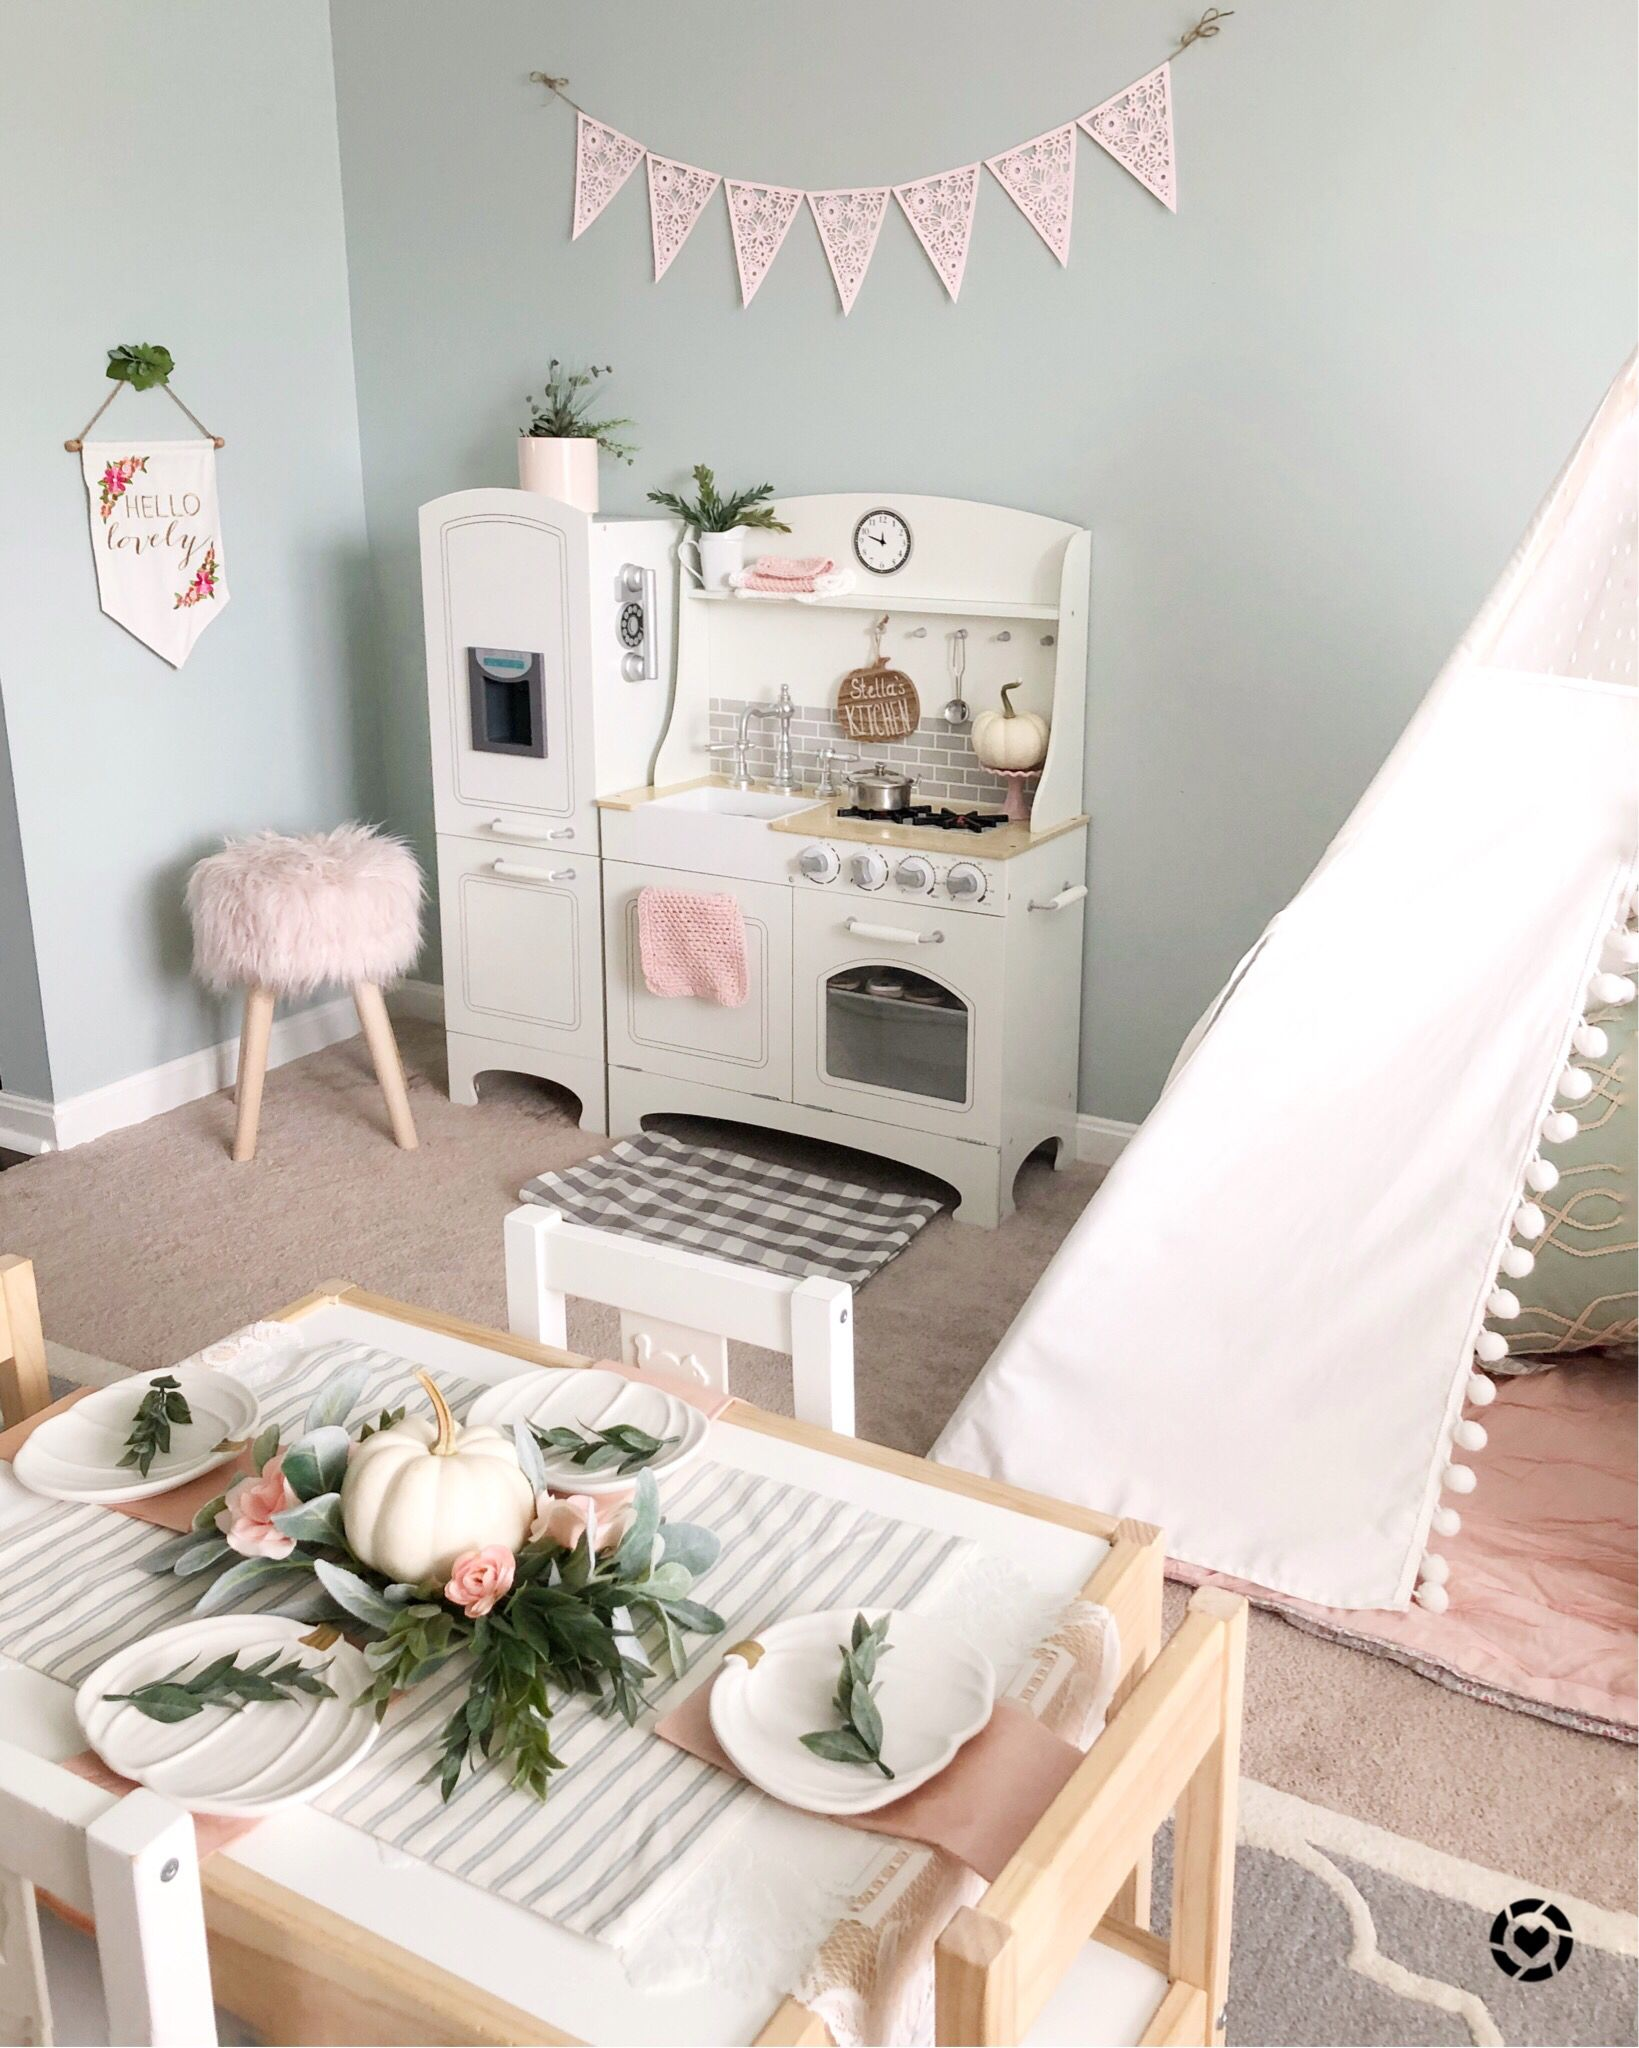 Playroom Decorated For Fall, Teepee, Girl Style, Pink